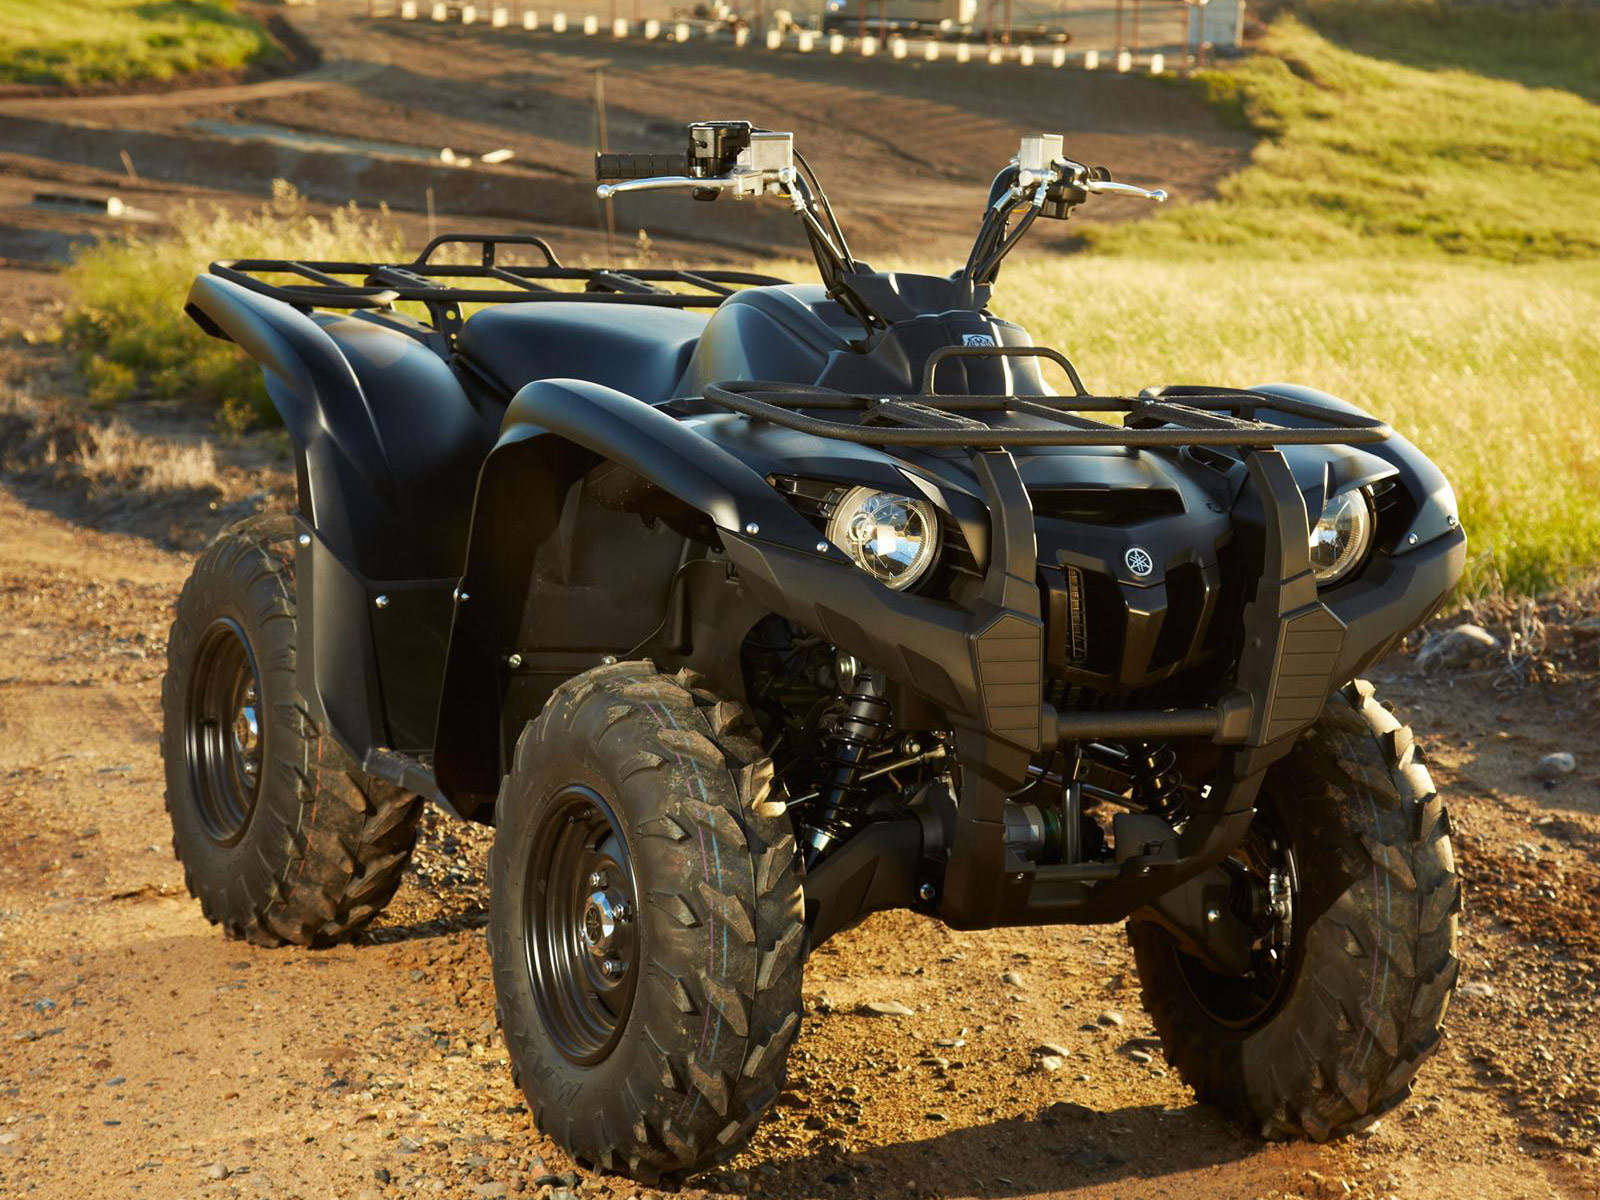 2013 raptor 700 horsepower autos post for 2017 yamaha grizzly 700 hp